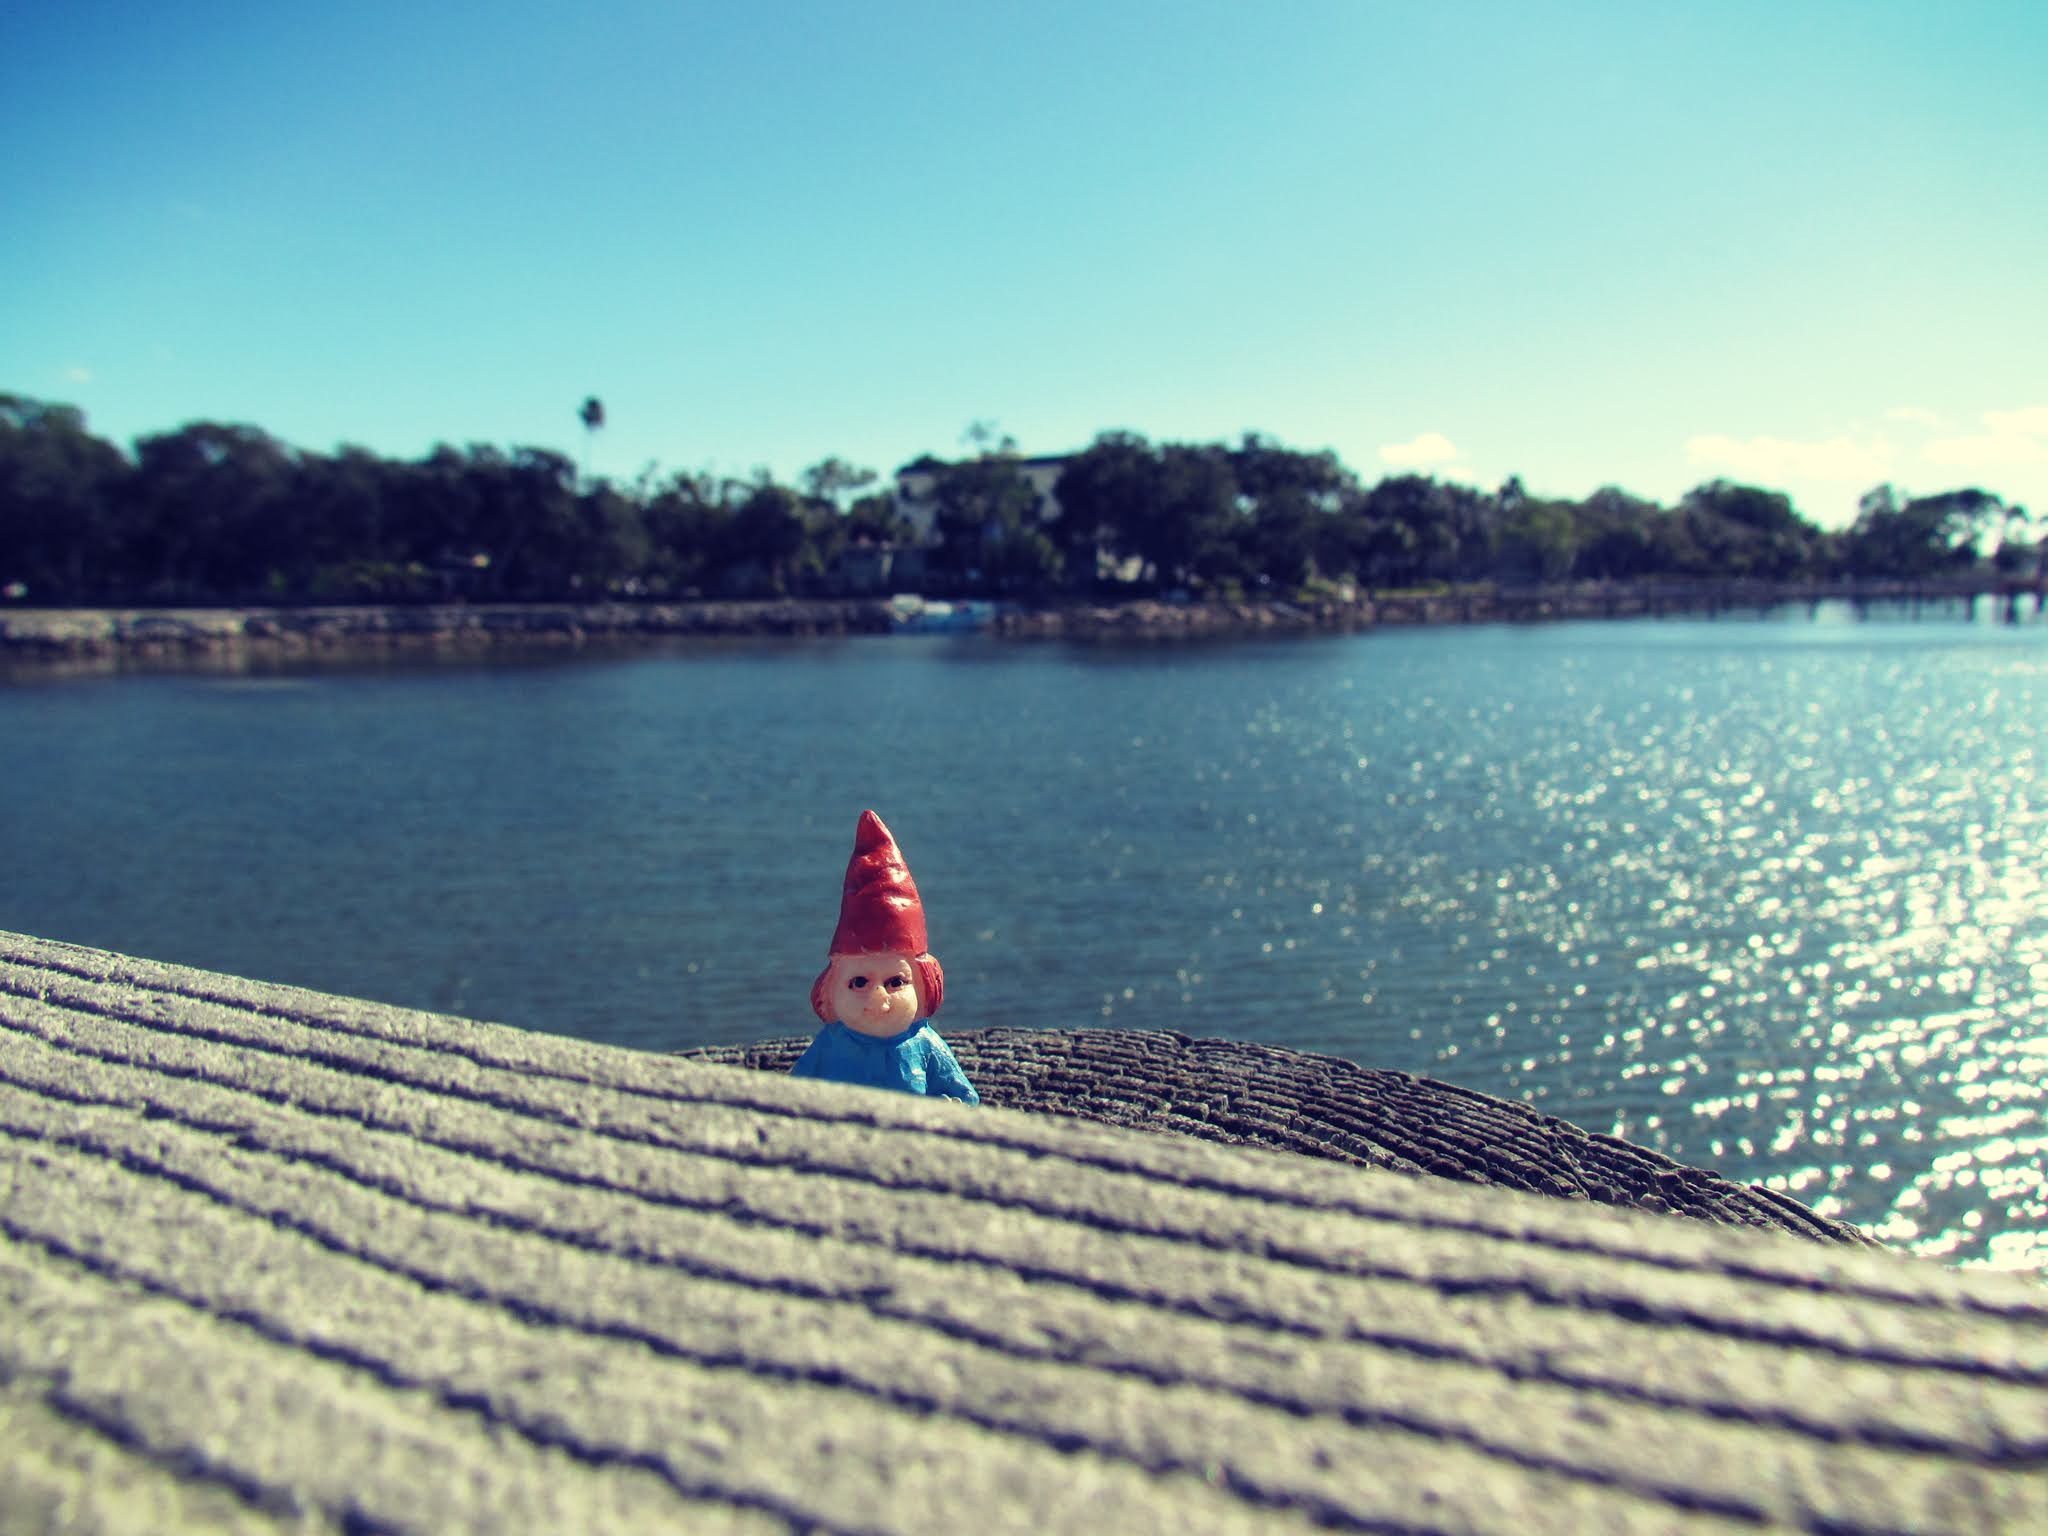 A tiny gnome witch doll + gnome girl figurine, girls novelty toys, toy figurines, sea witch hat